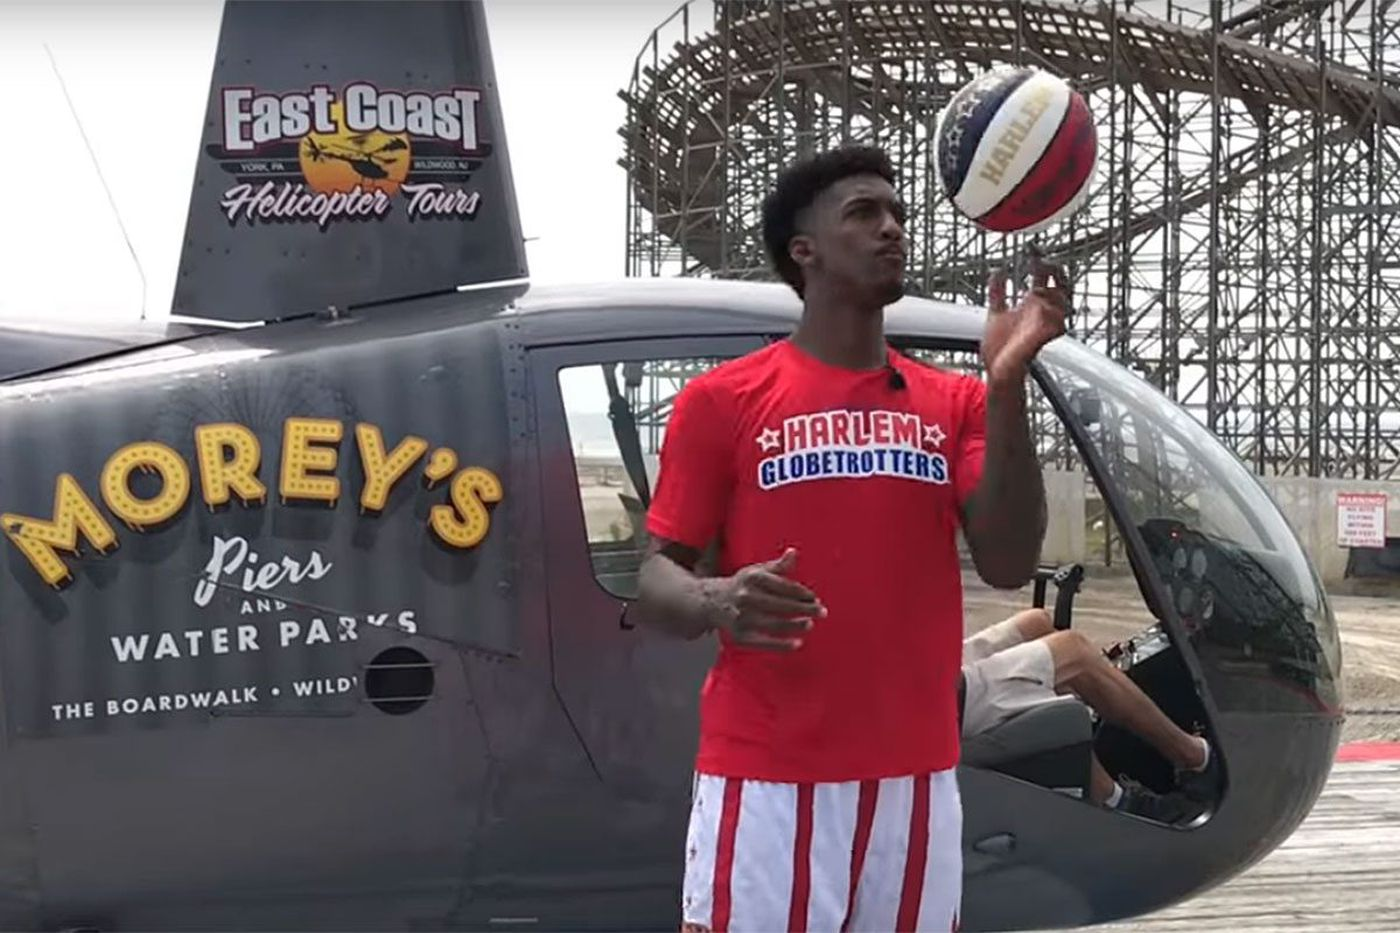 Watch: Harlem Globetrotter hits shot from helicopter in Wildwood